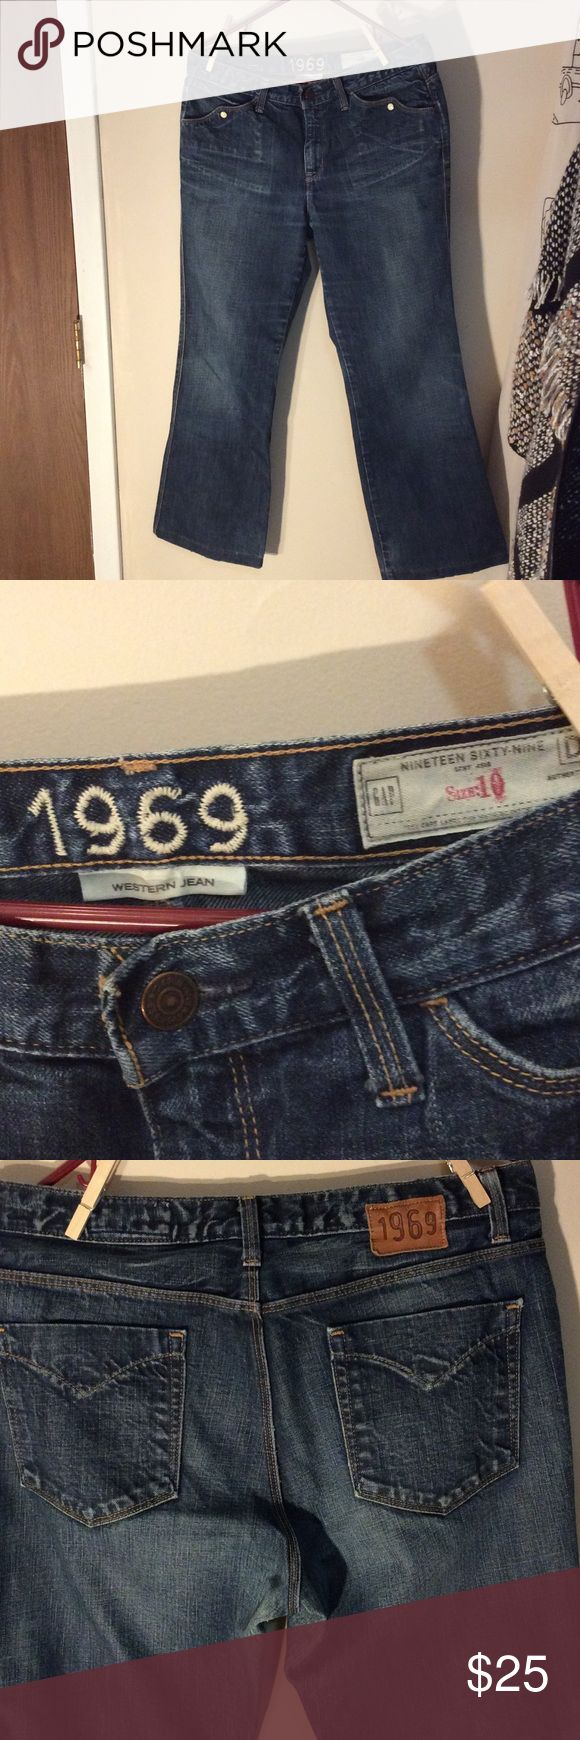 Nice wide leg Gap 1969 Western Jean authentic👖💕 Nice boot cut 1969 gap western Jean Fun detail on pocket with snap button closure as shown in picture Stressed weathered look Inseam 26 1/2 inches waist  16 1/2 inches across laying  down 100% cotton Good used condition gap western jean Jeans Boot Cut